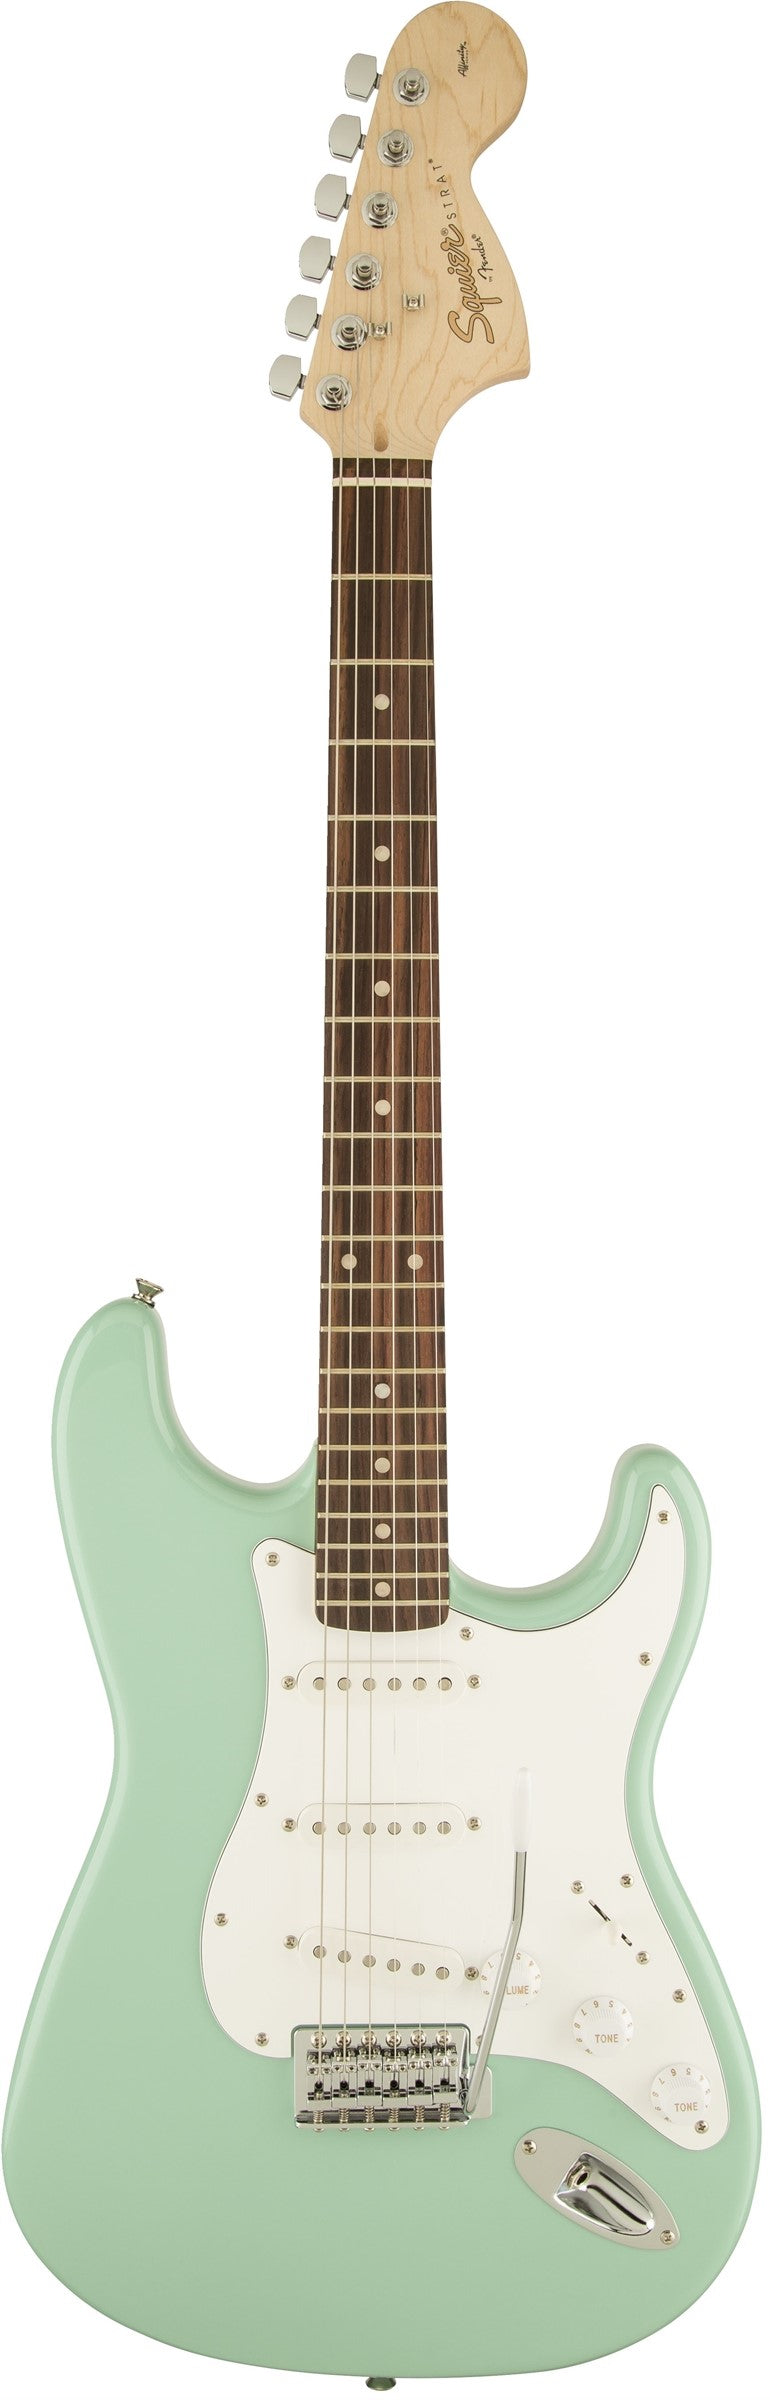 Squier Affinity Series Stratocaster Electric Guitar - Rosewood Fingerboard, Surf Green